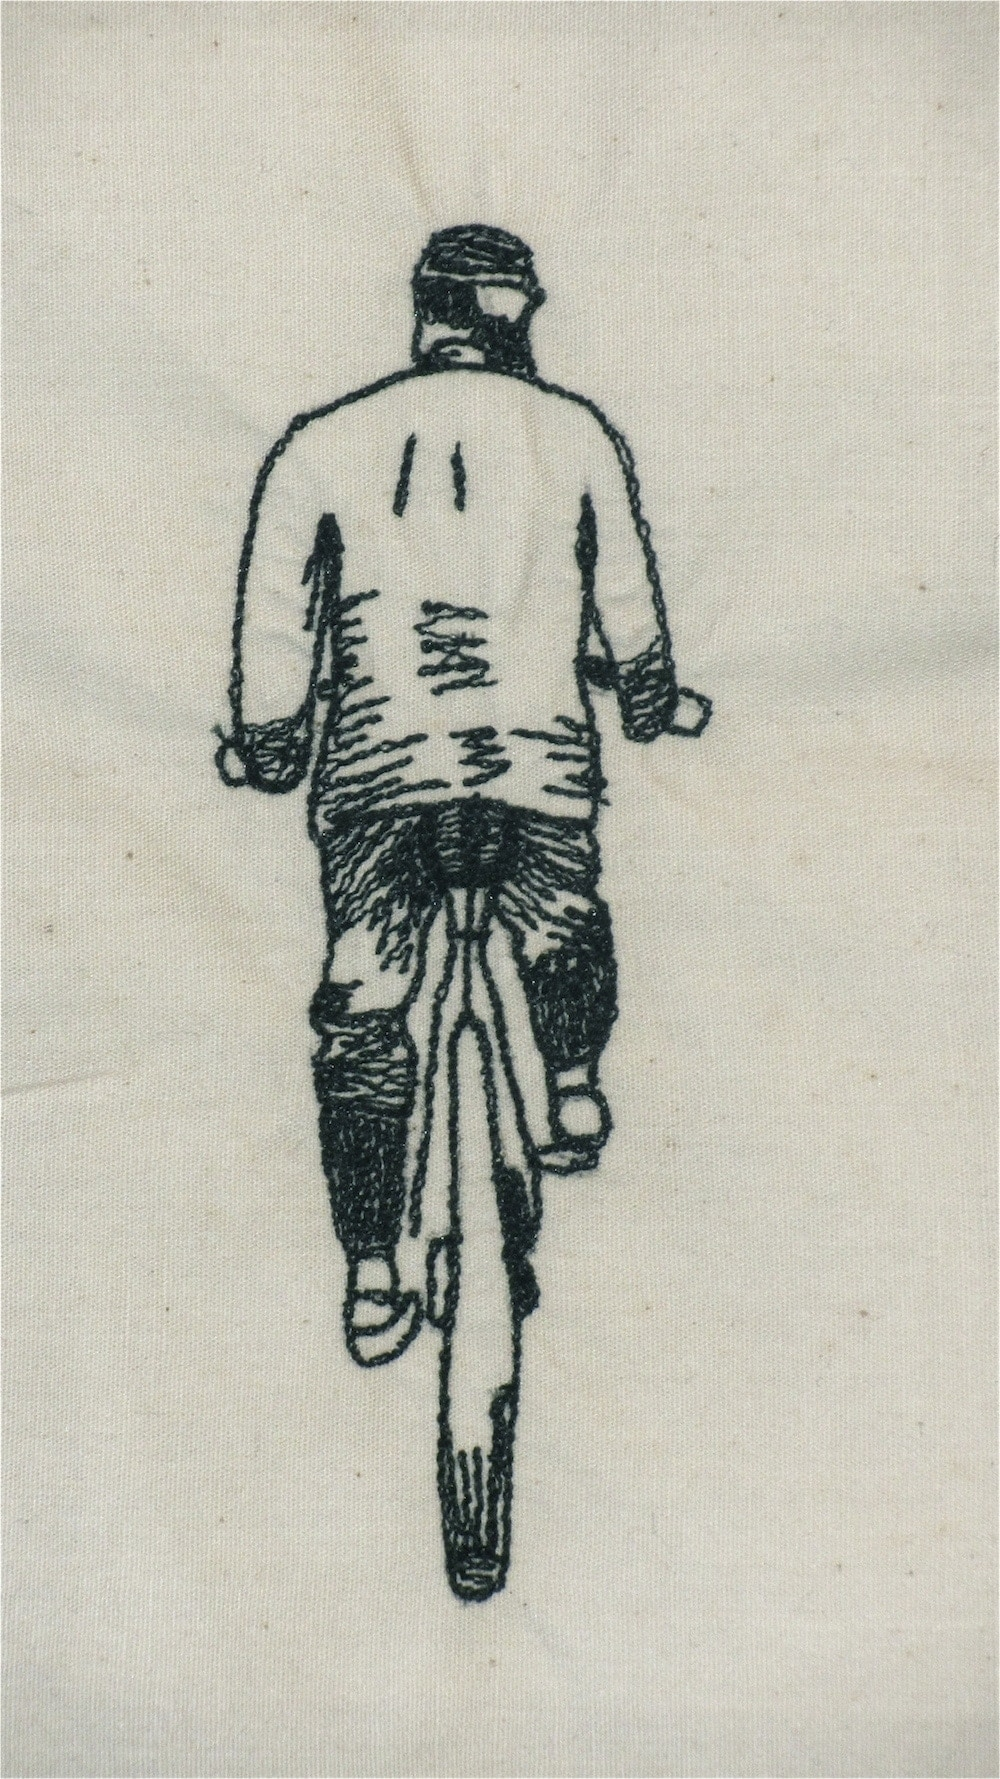 Free Motion Embroidery Cyclist black and white.jpg